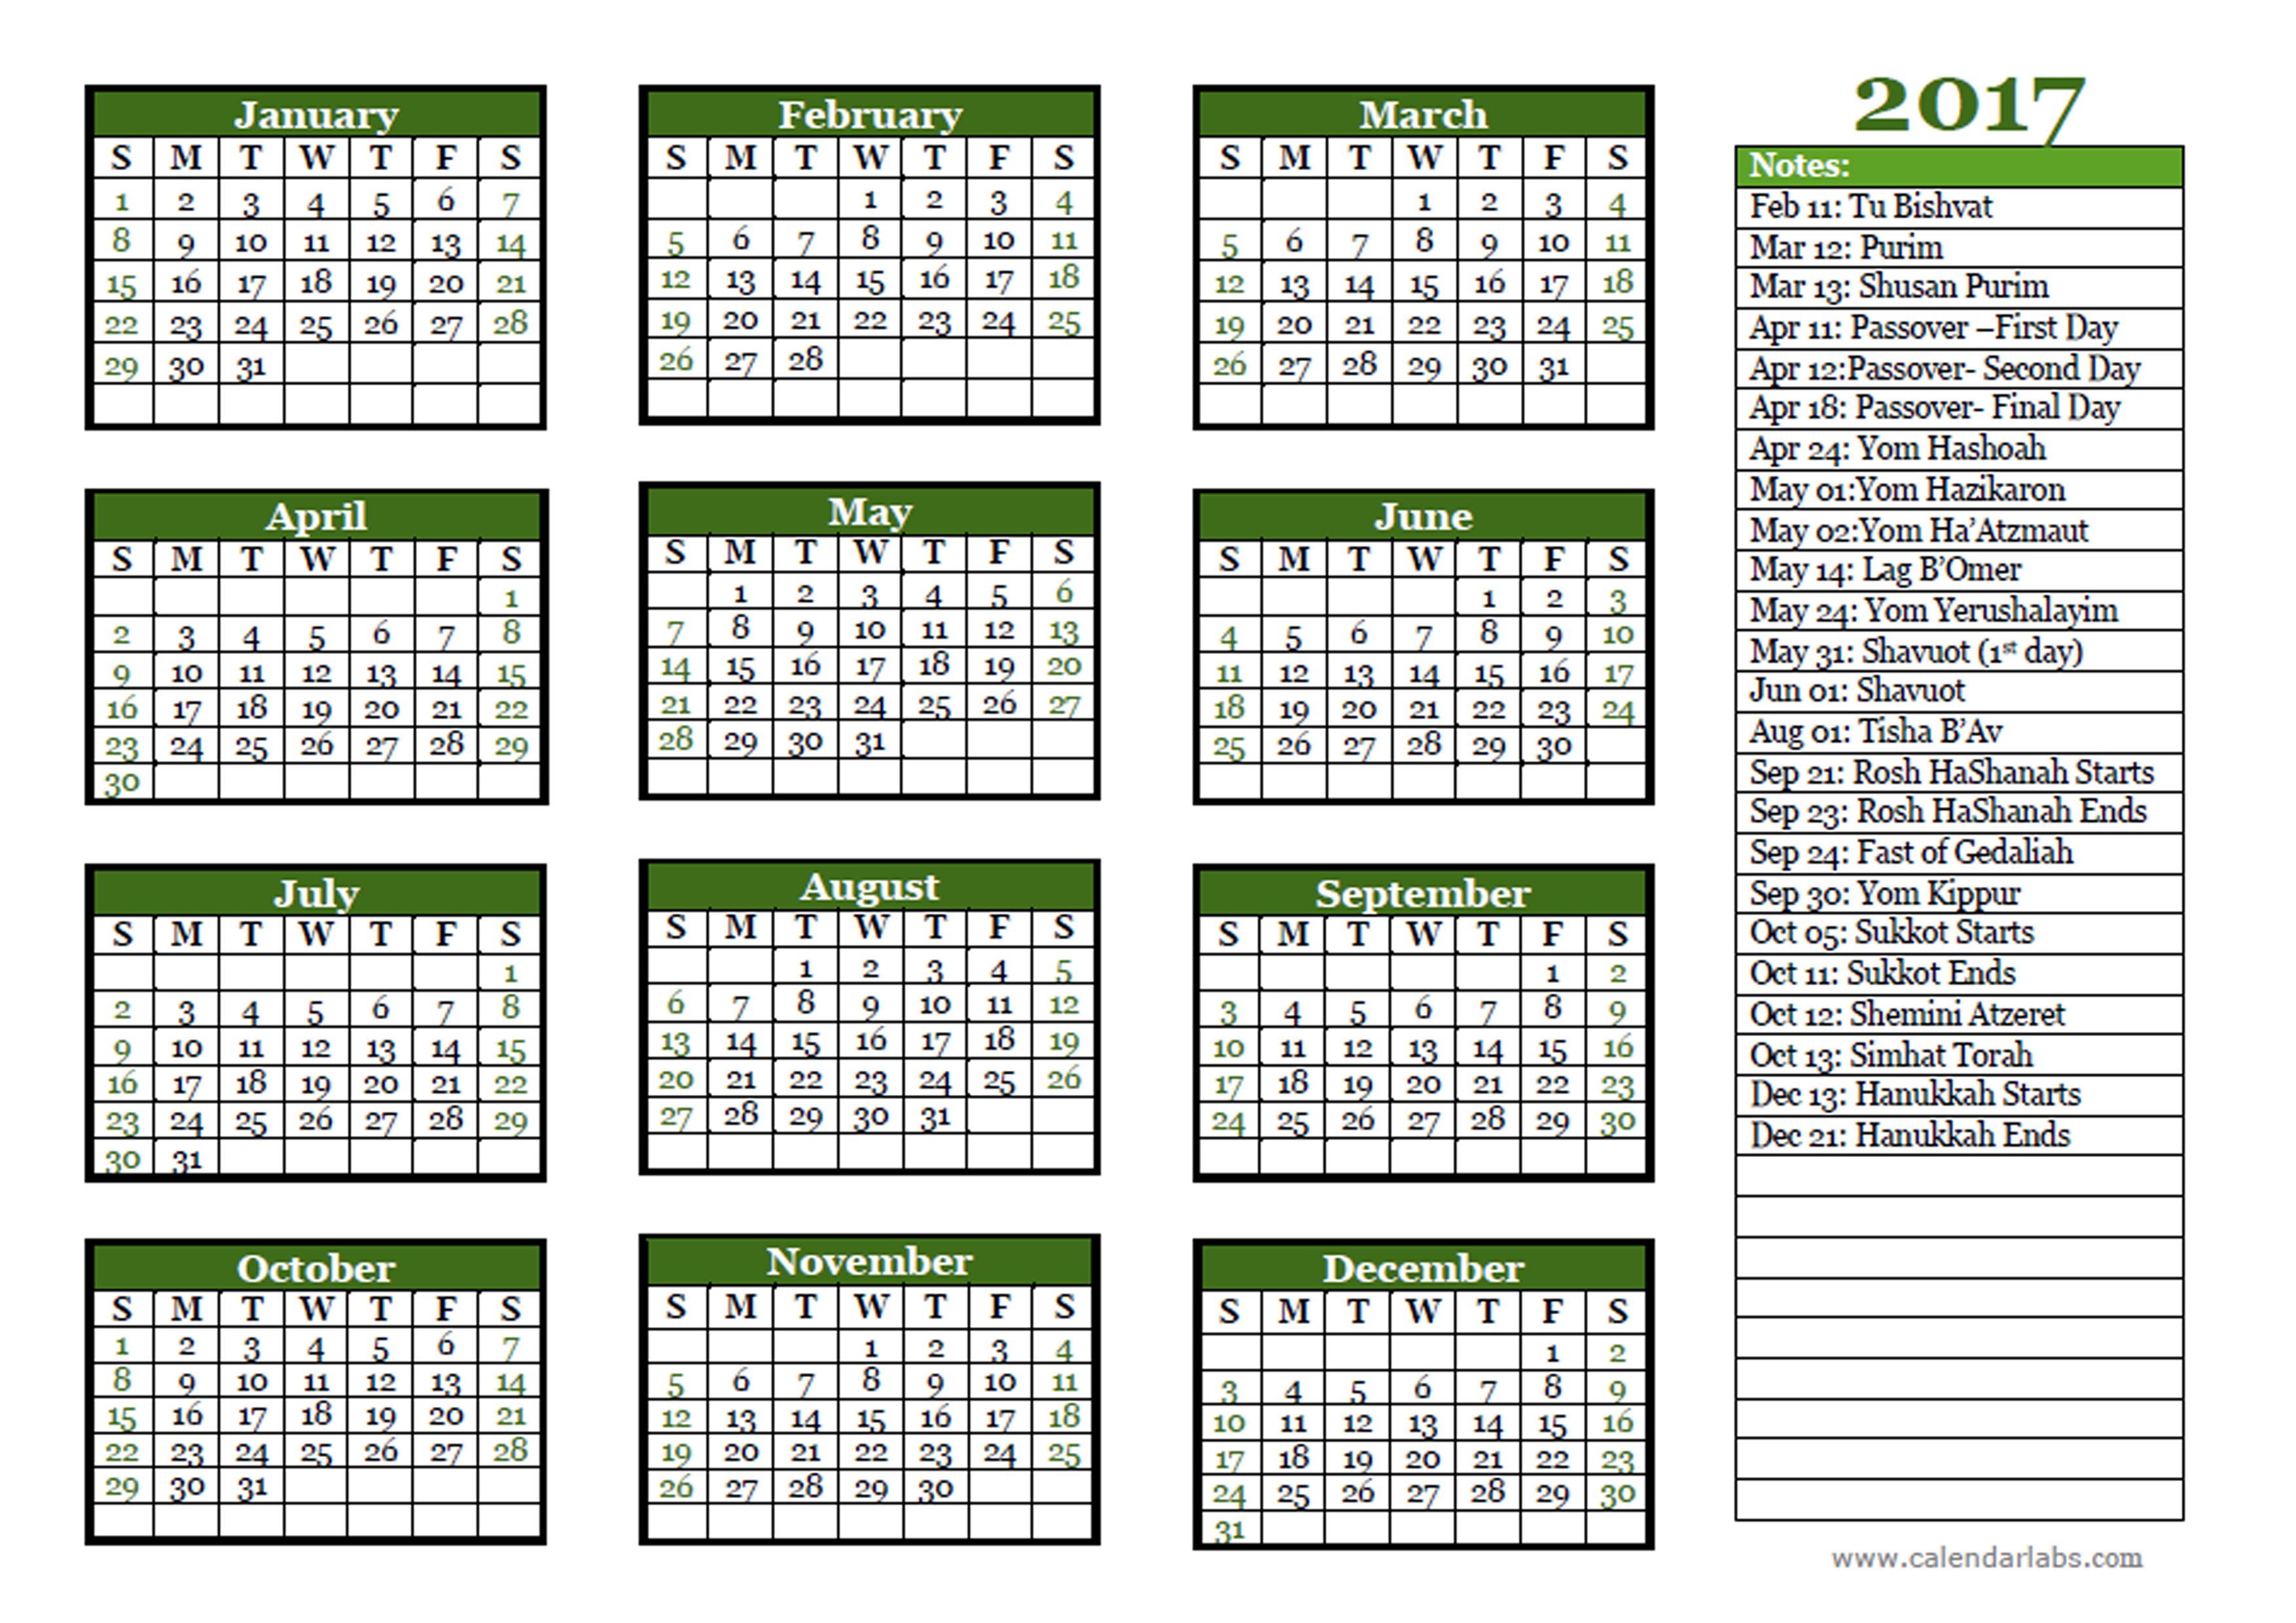 Online Calendar Uk Sept Uk Laser Association 2017 Jewish Festivals Calendar Template Free Printable